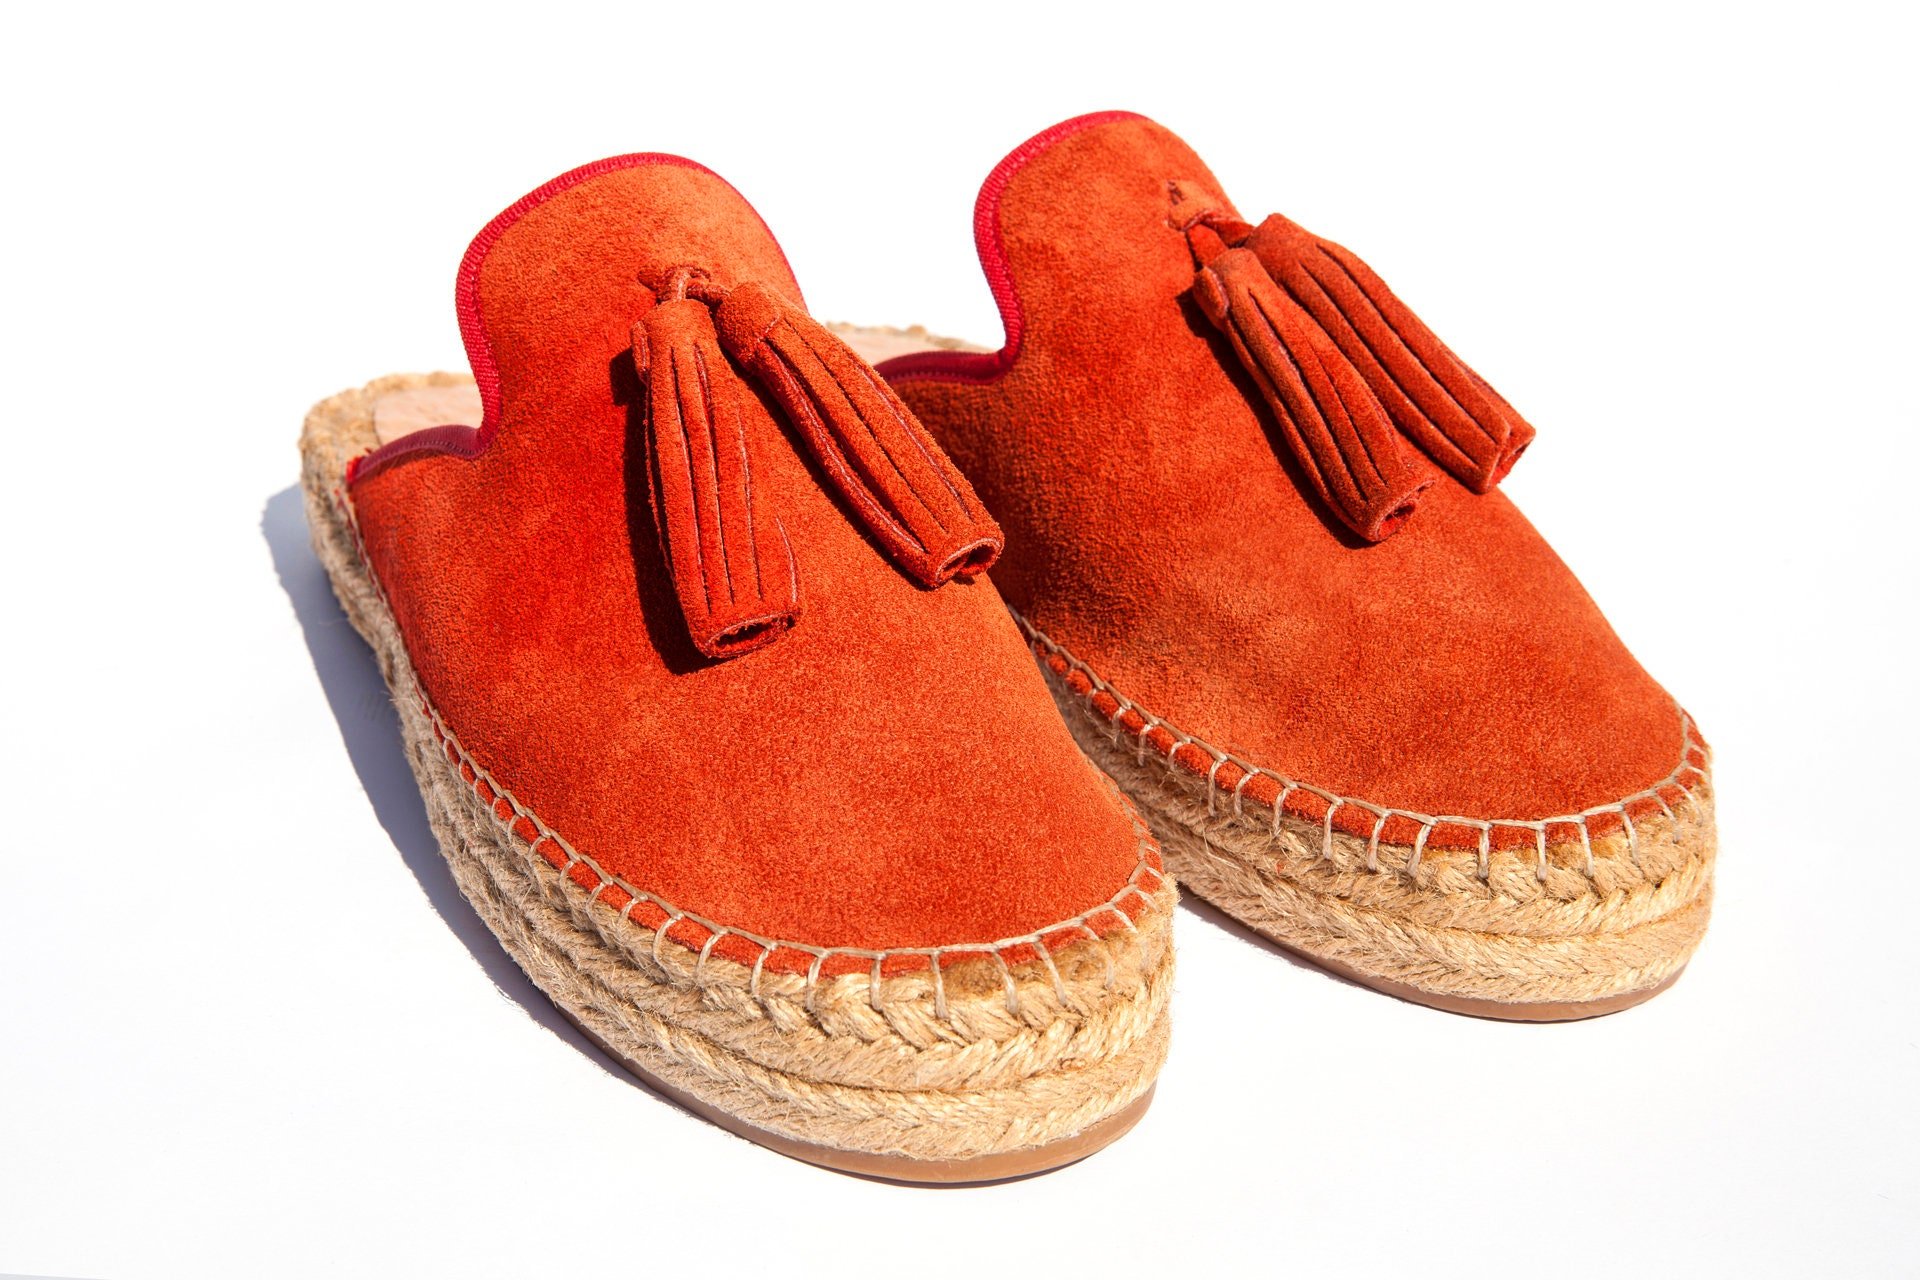 Red suede leather espadrille women slipper, sandals, summer sandals, women espadrille shoes, espadrille soles, authentic leather, comfortable a5fc33